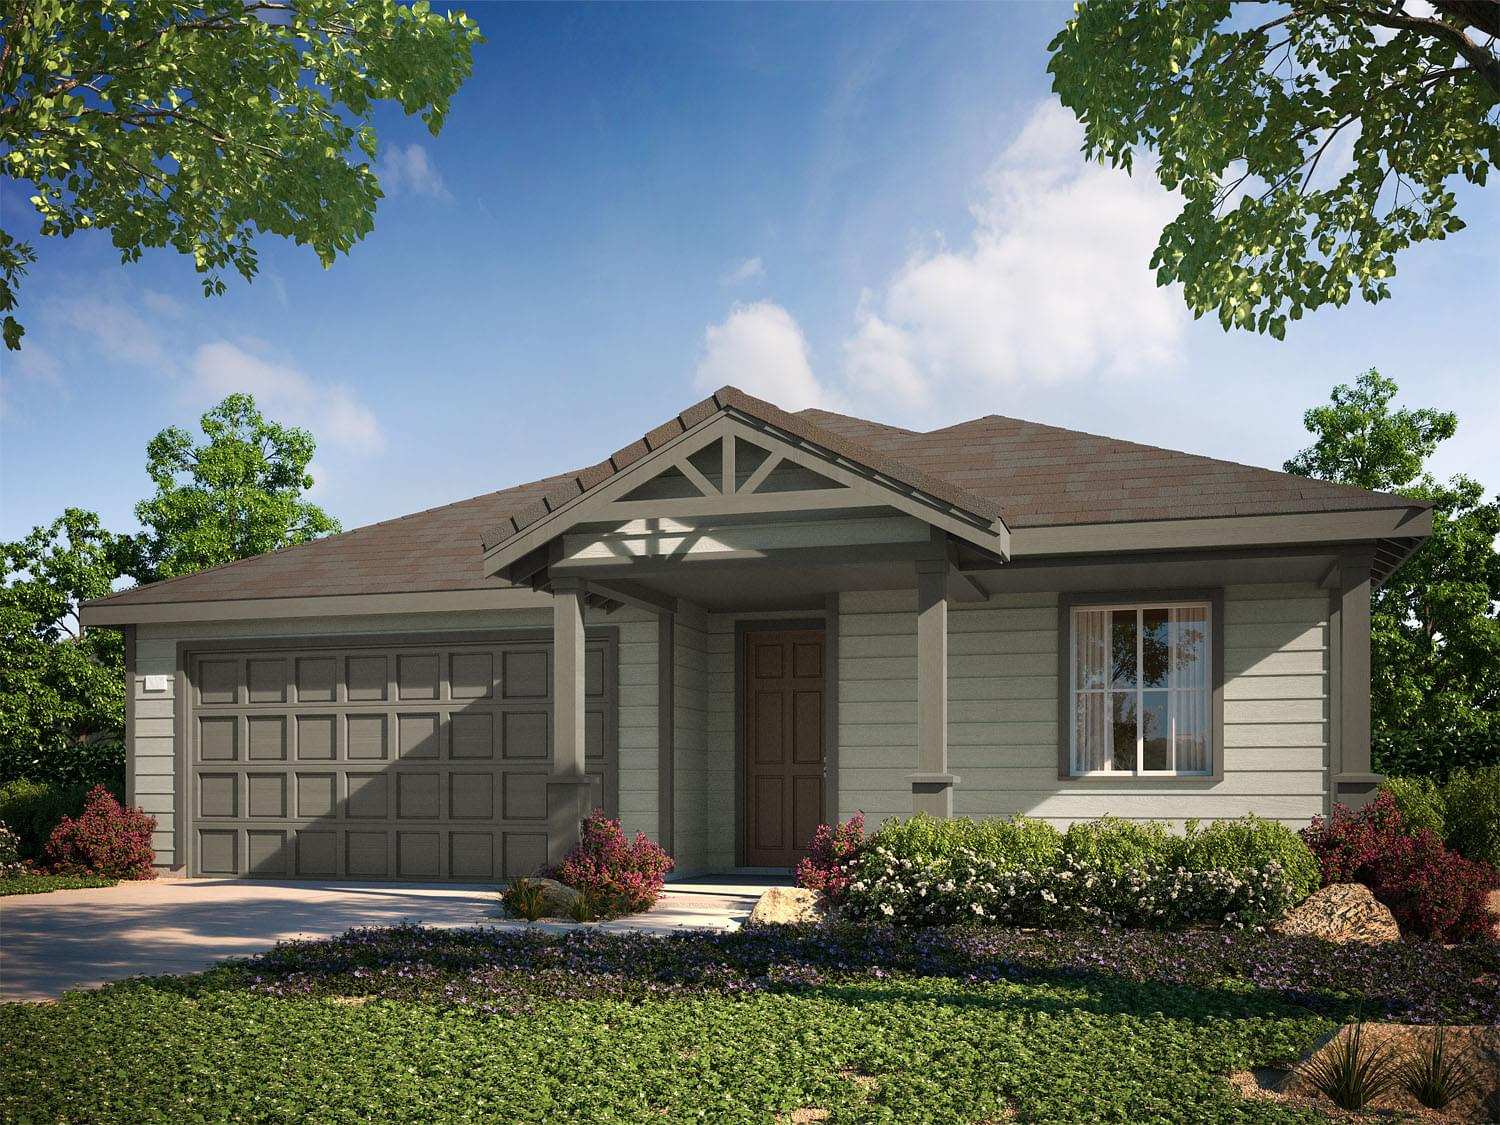 528 Spyglass Circle in Angels Camp, CA by DeNova Homes